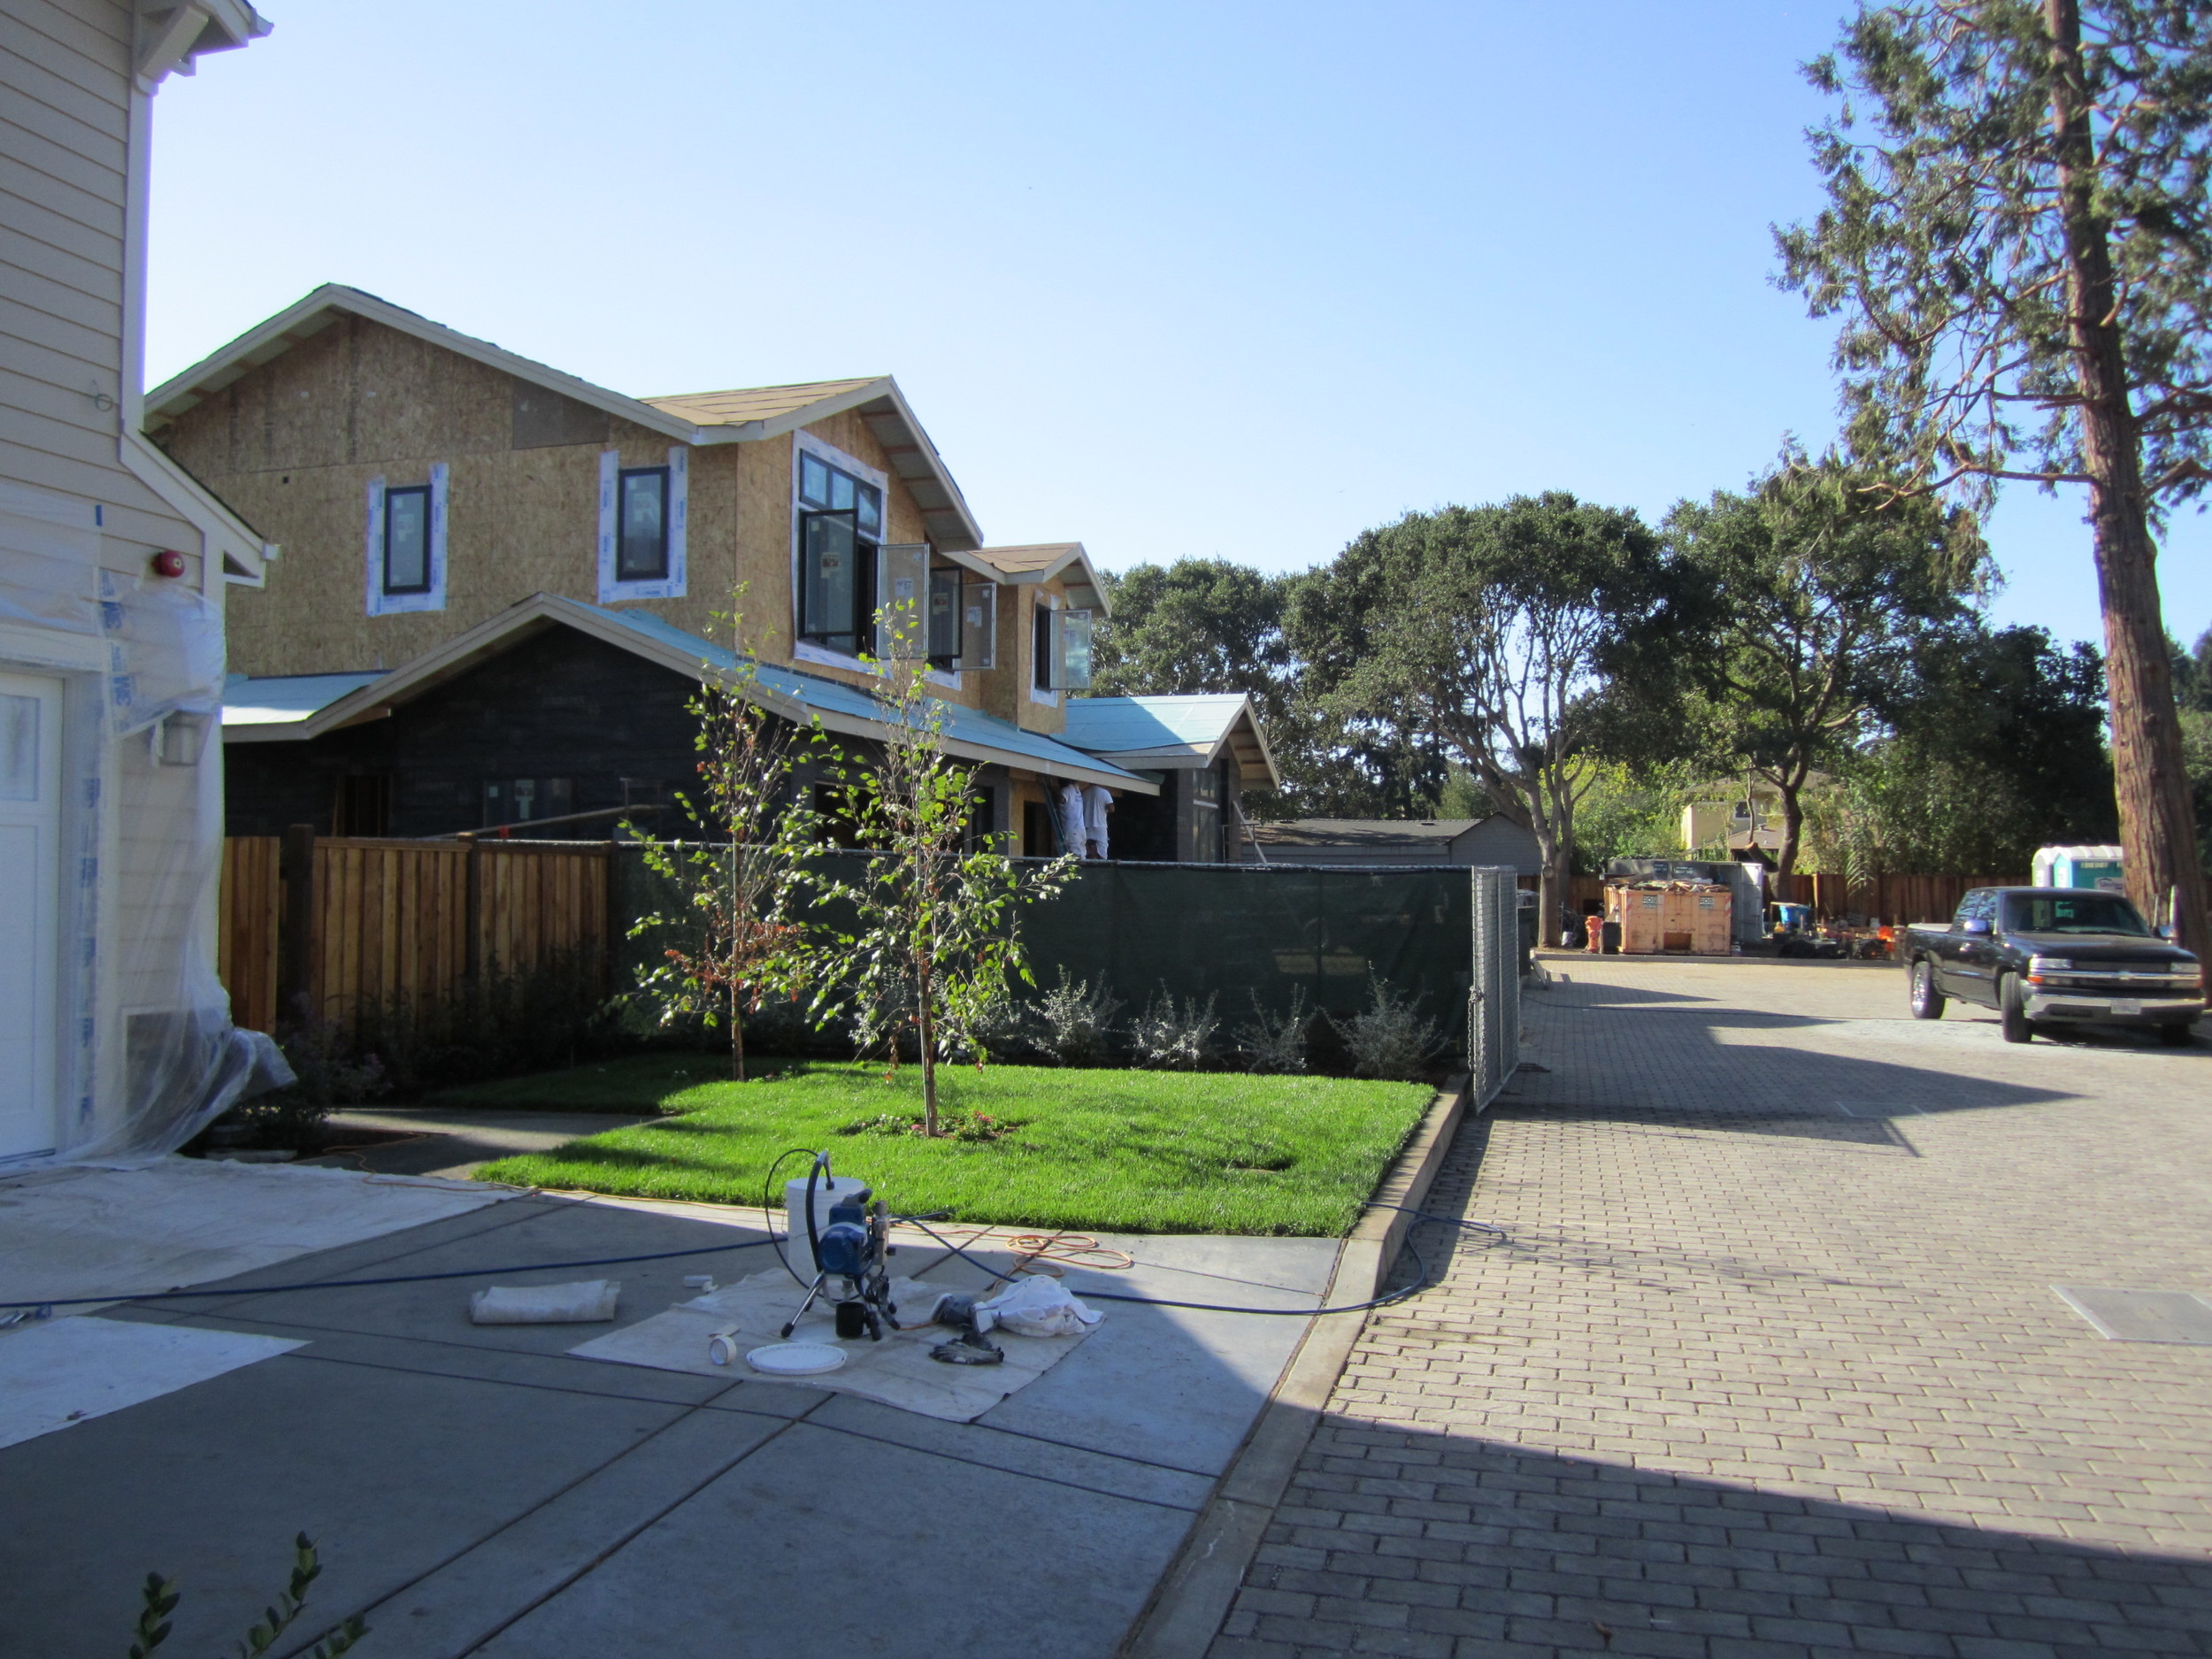 West Oakwood Redwood City Rossi Lane Redwood City 6 Homes available 2015/16